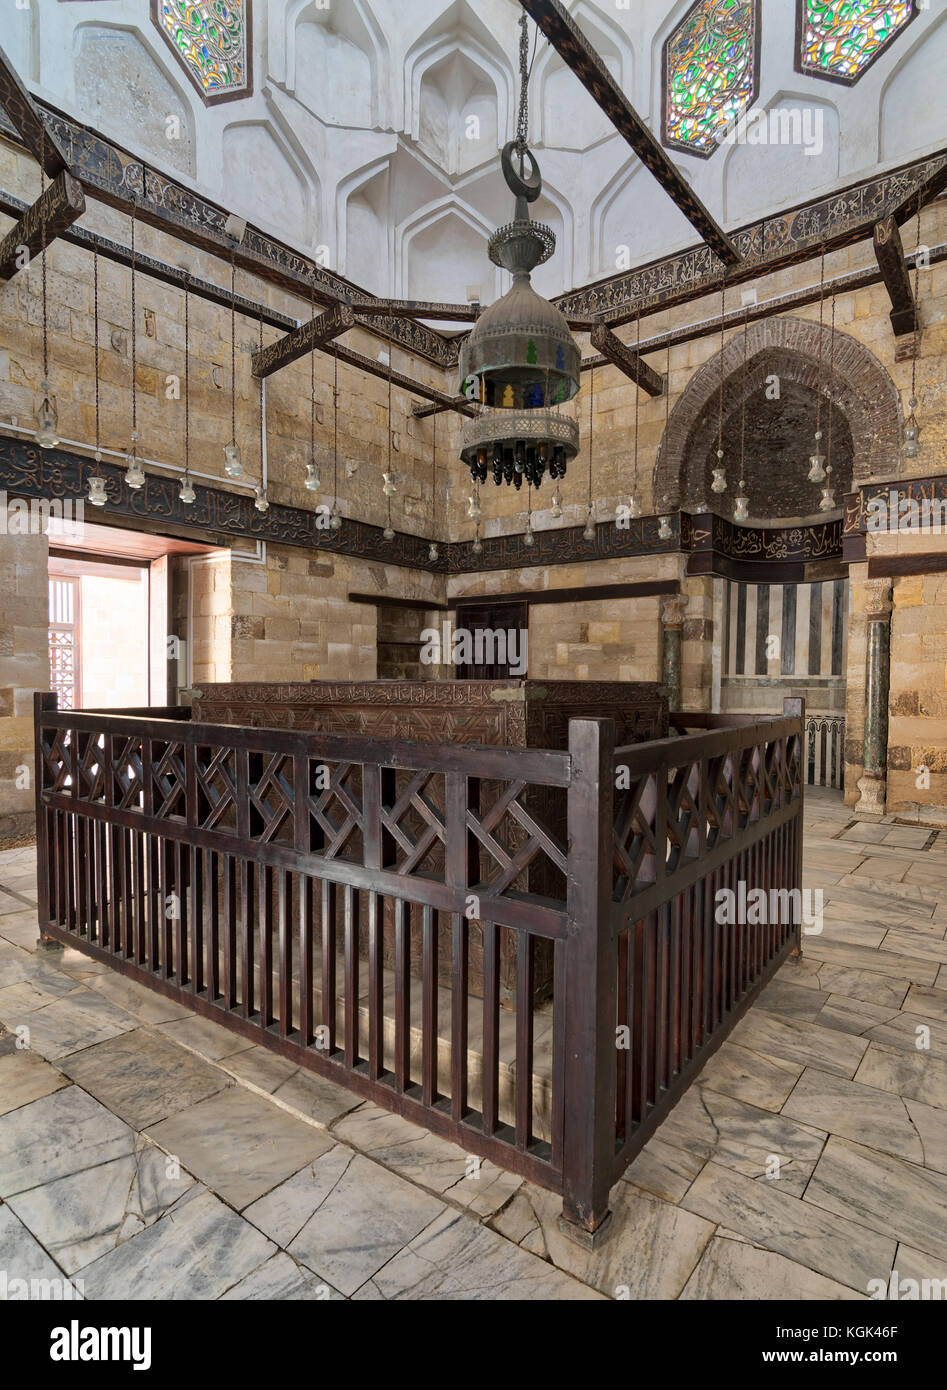 Interior of Mausoleum of al-Salih constructed by As-Saleh Nagm Ad-Din Ayyub in 1242-44, Al Muizz Street, Old Cairo, - Stock Image